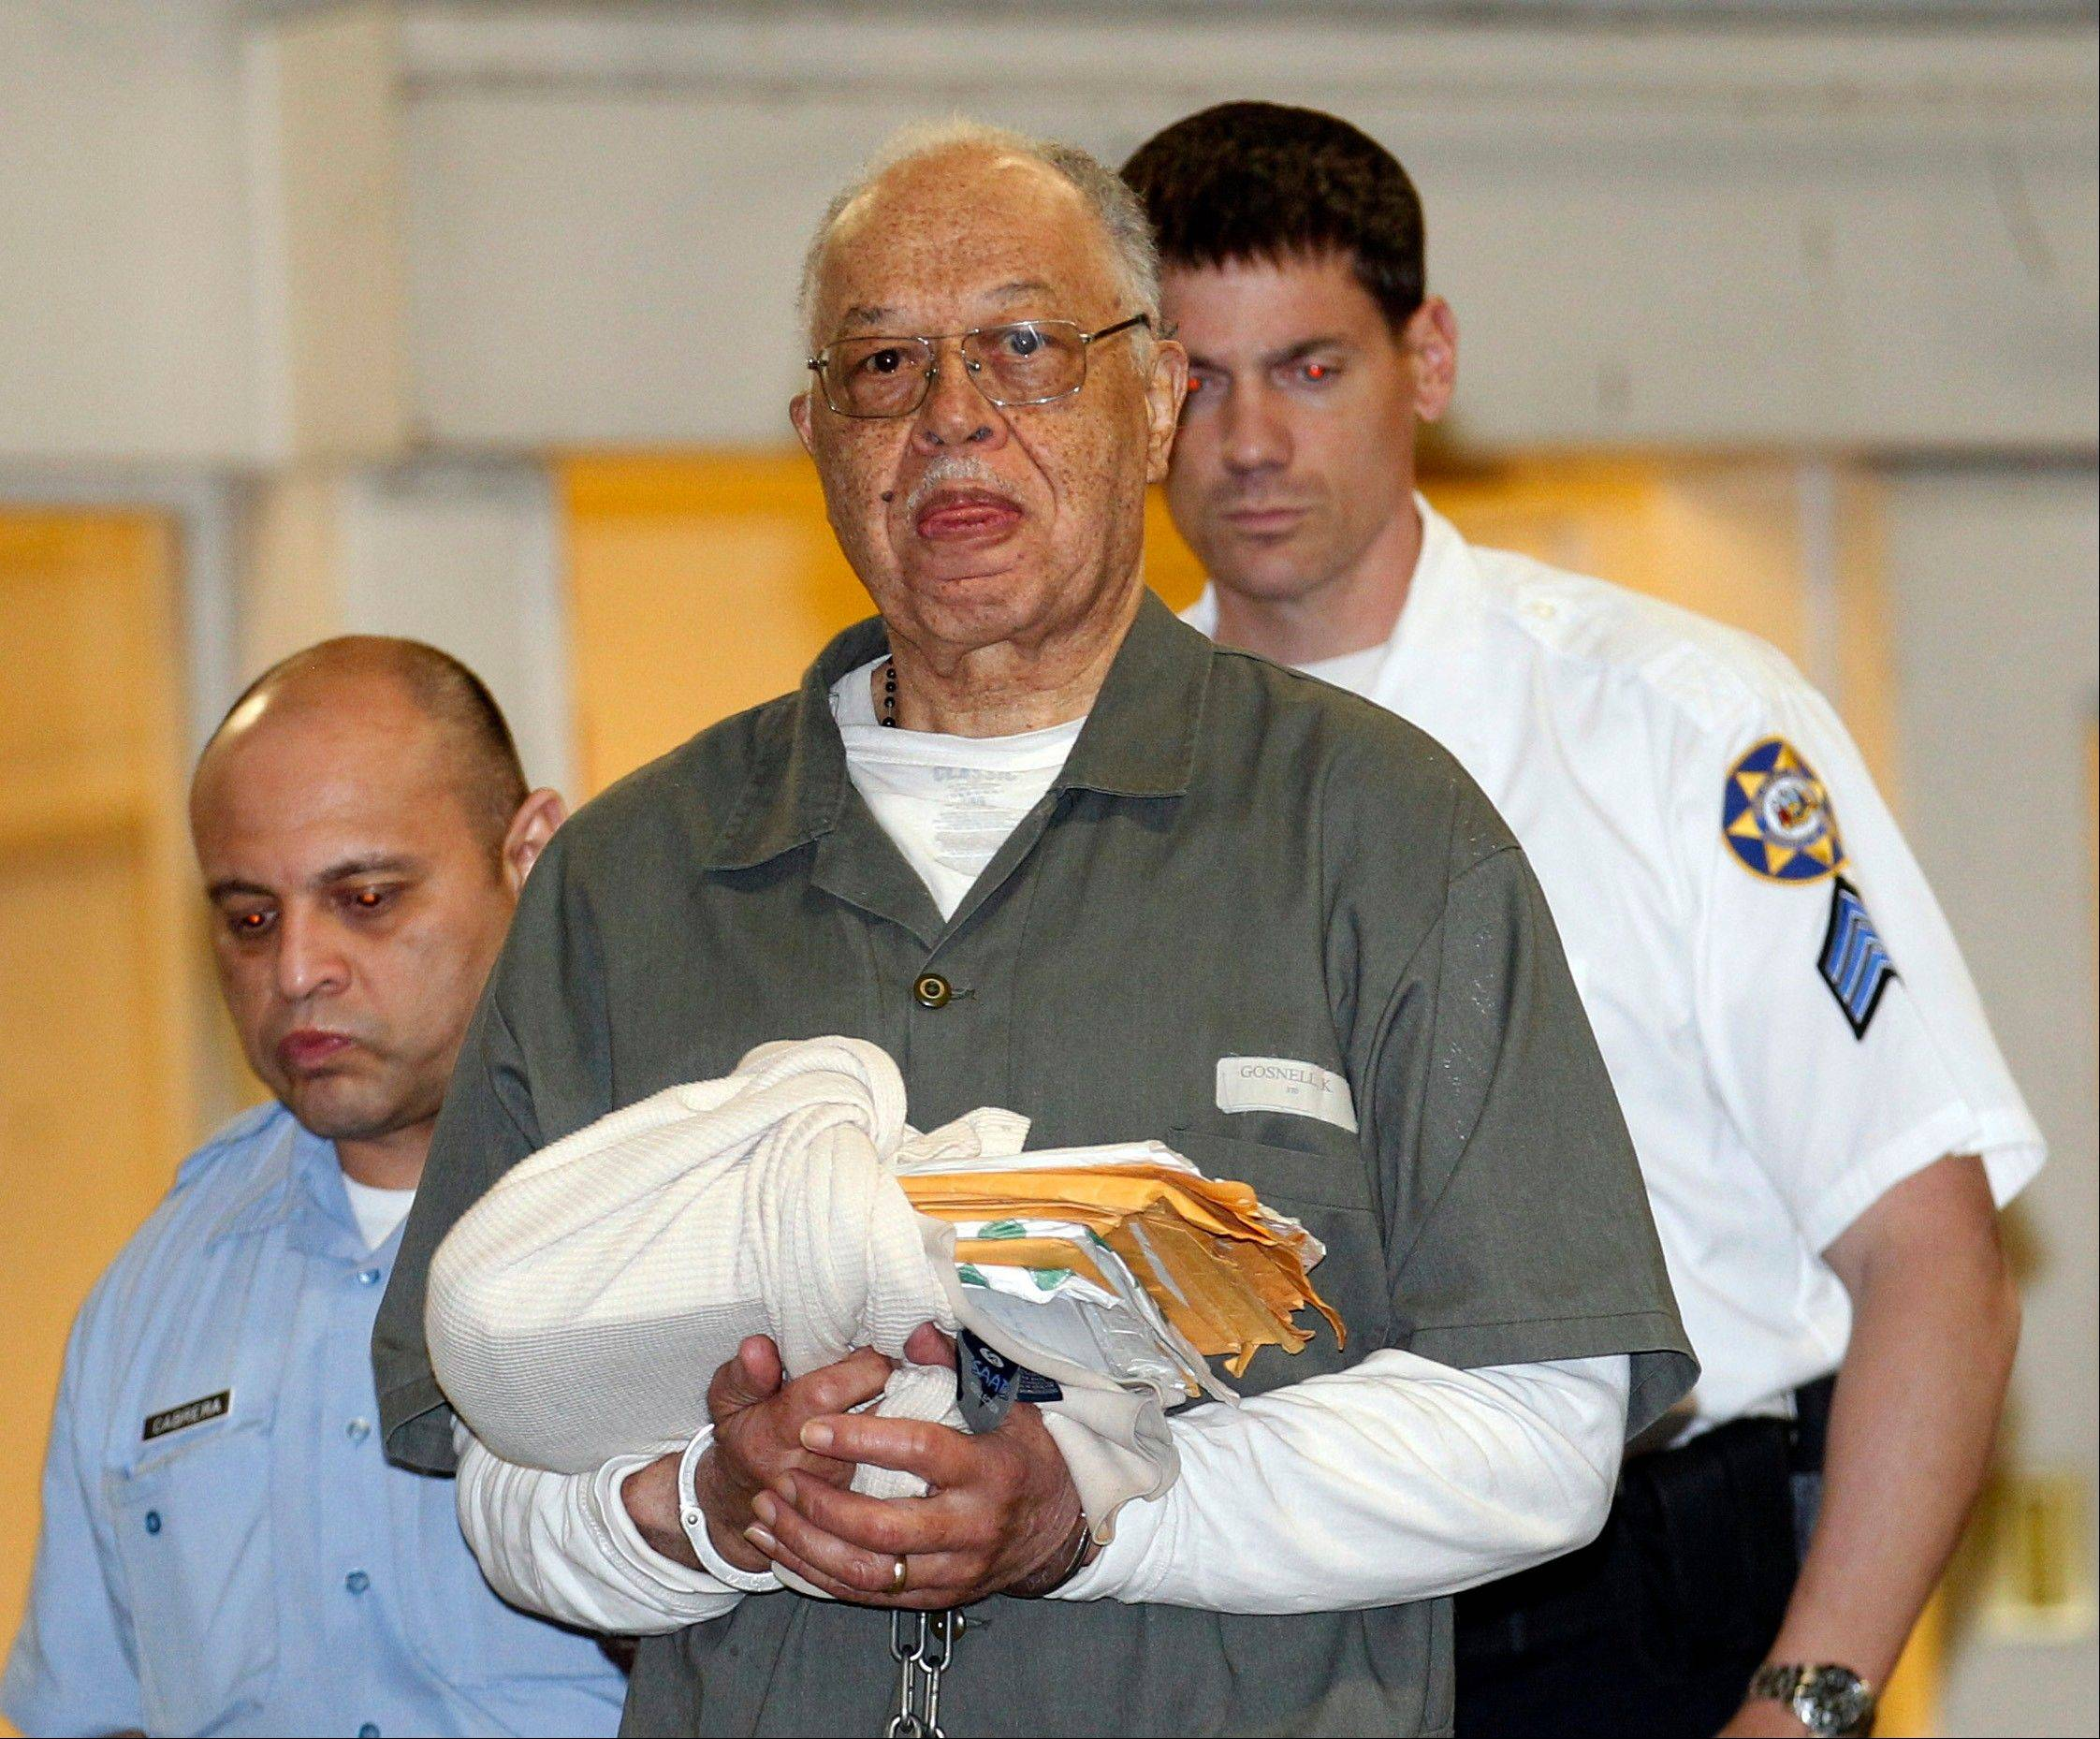 Dr. Kermit Gosnell is escorted to a waiting police van upon leaving the Criminal Justice Center in Philadelphia Monday after being convicted of first-degree murder in the deaths of three babies delivered alive and then killed.